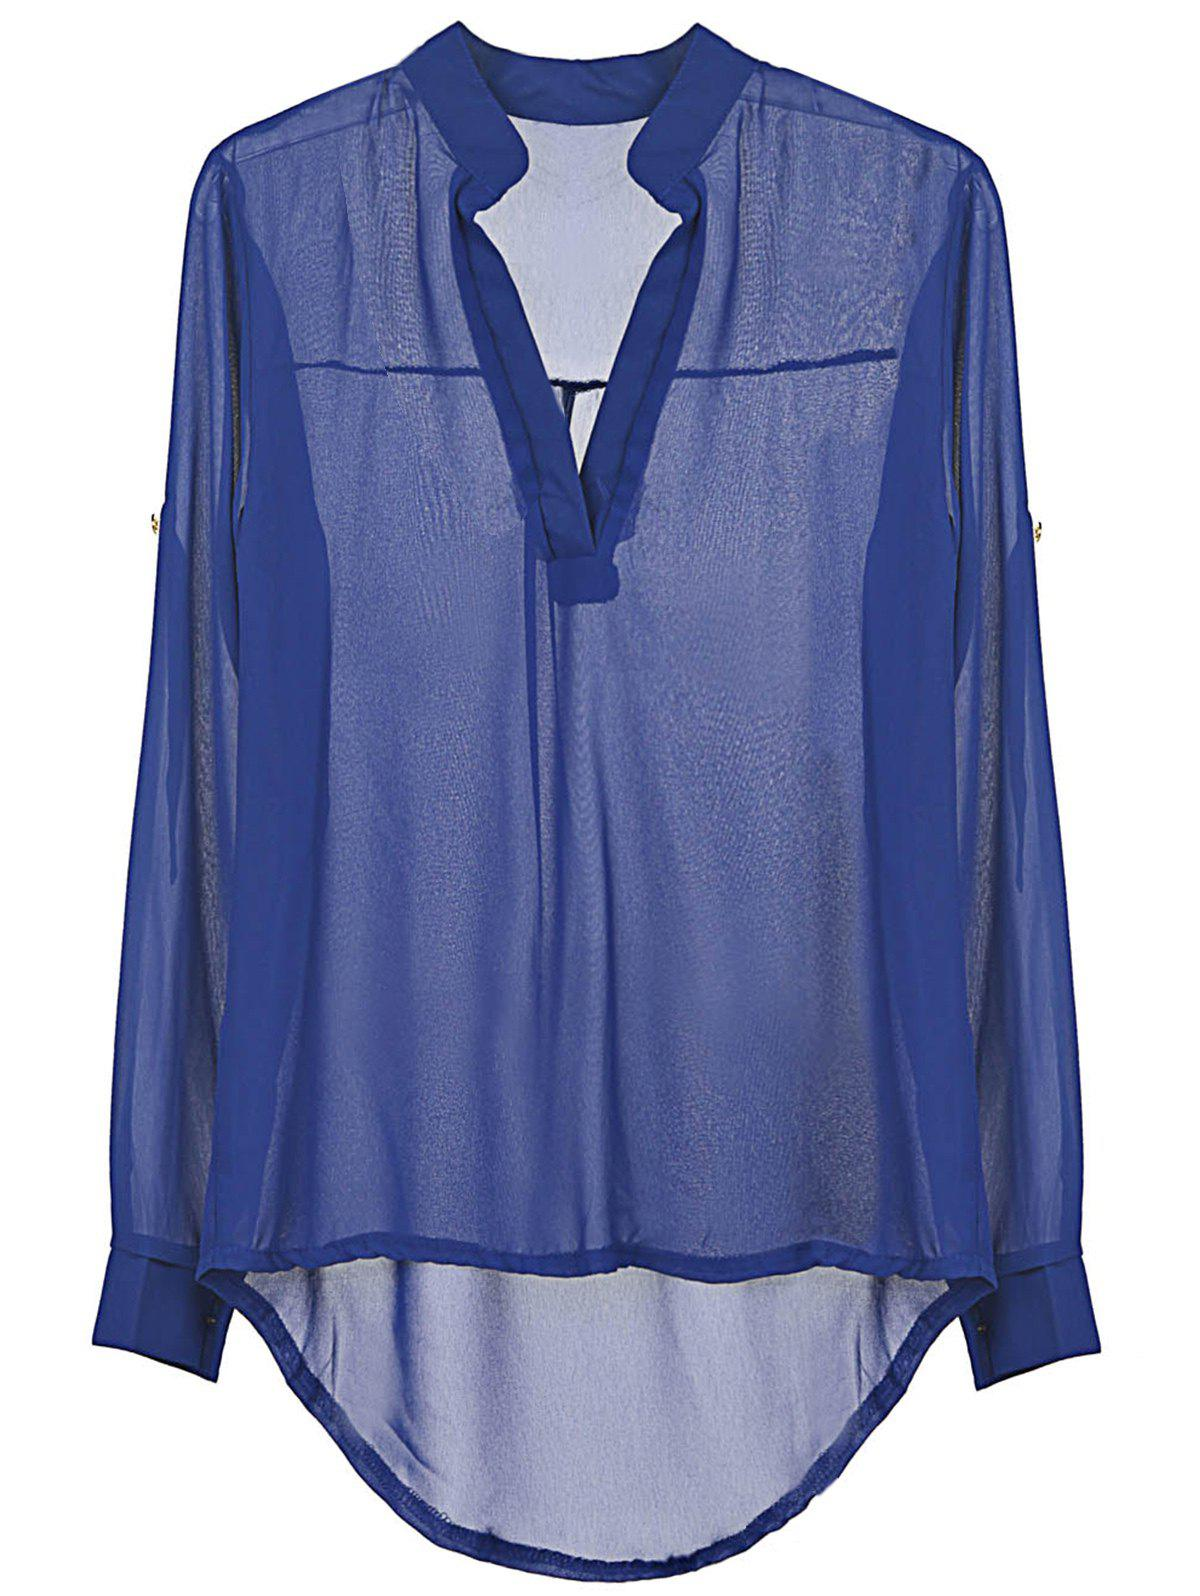 Women's Spring Summer Long Sleeve Chiffon V-Neck Blouse - BLUE L